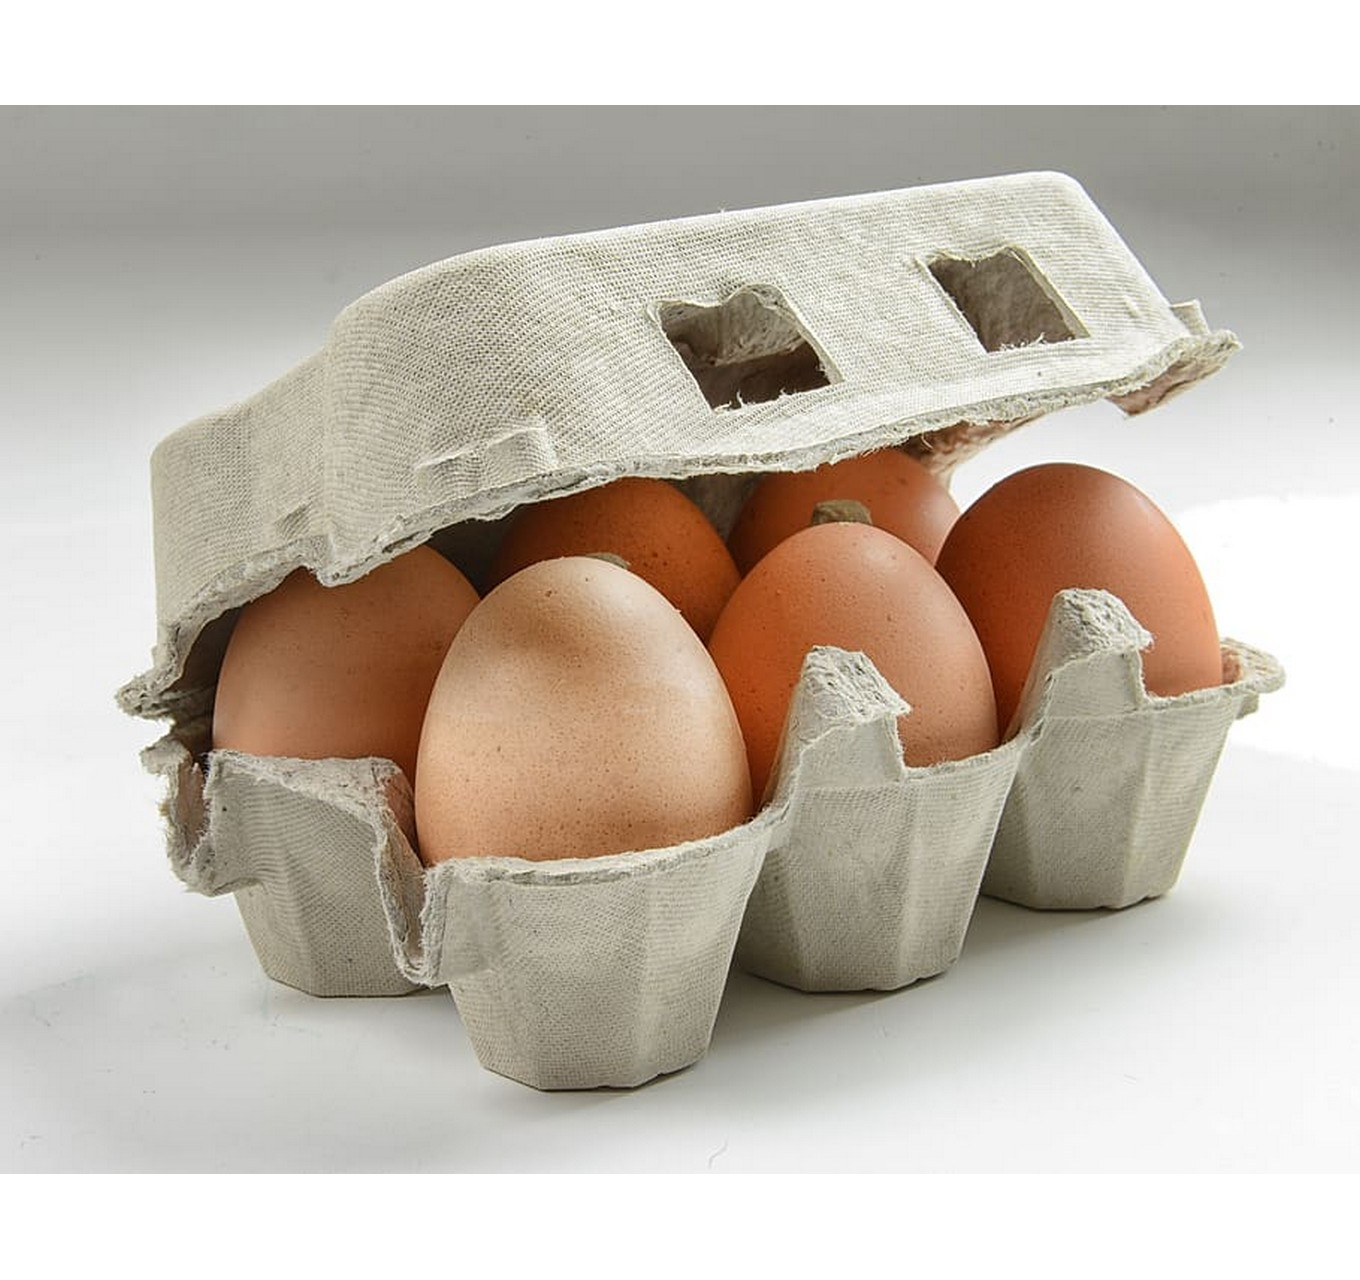 Medium Free Range Eggs -6 Pack